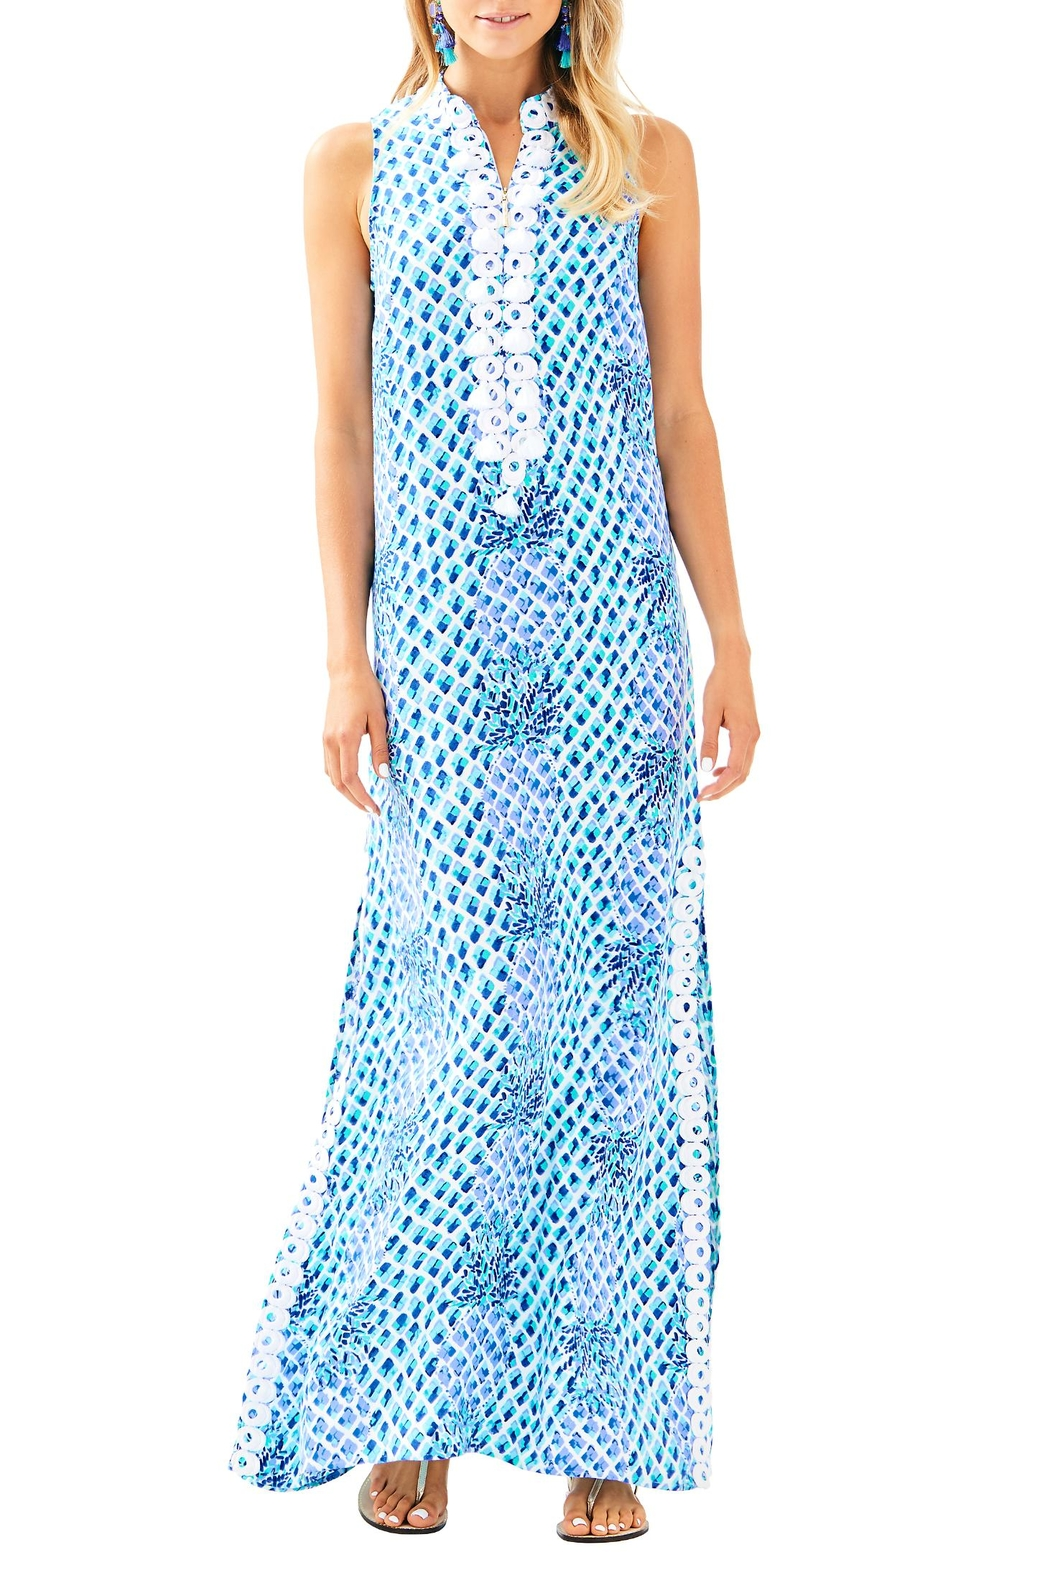 Lilly Pulitzer Jane Maxi Dress from Sandestin Golf and Beach ...